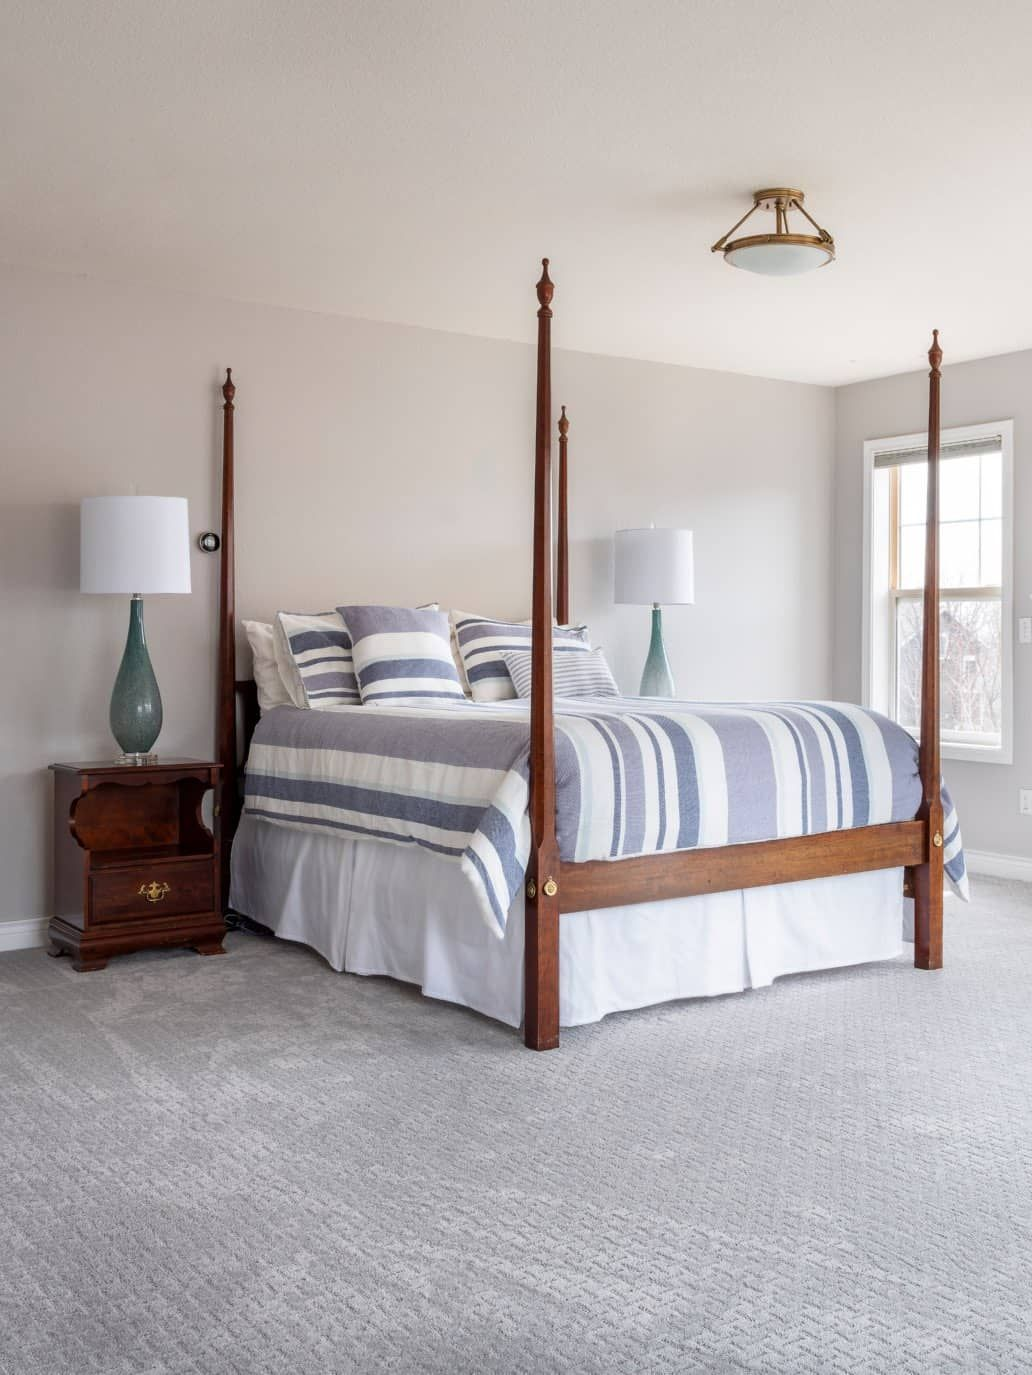 6 best neutral paint colors to sell your house best on paint colors to sell house id=86854